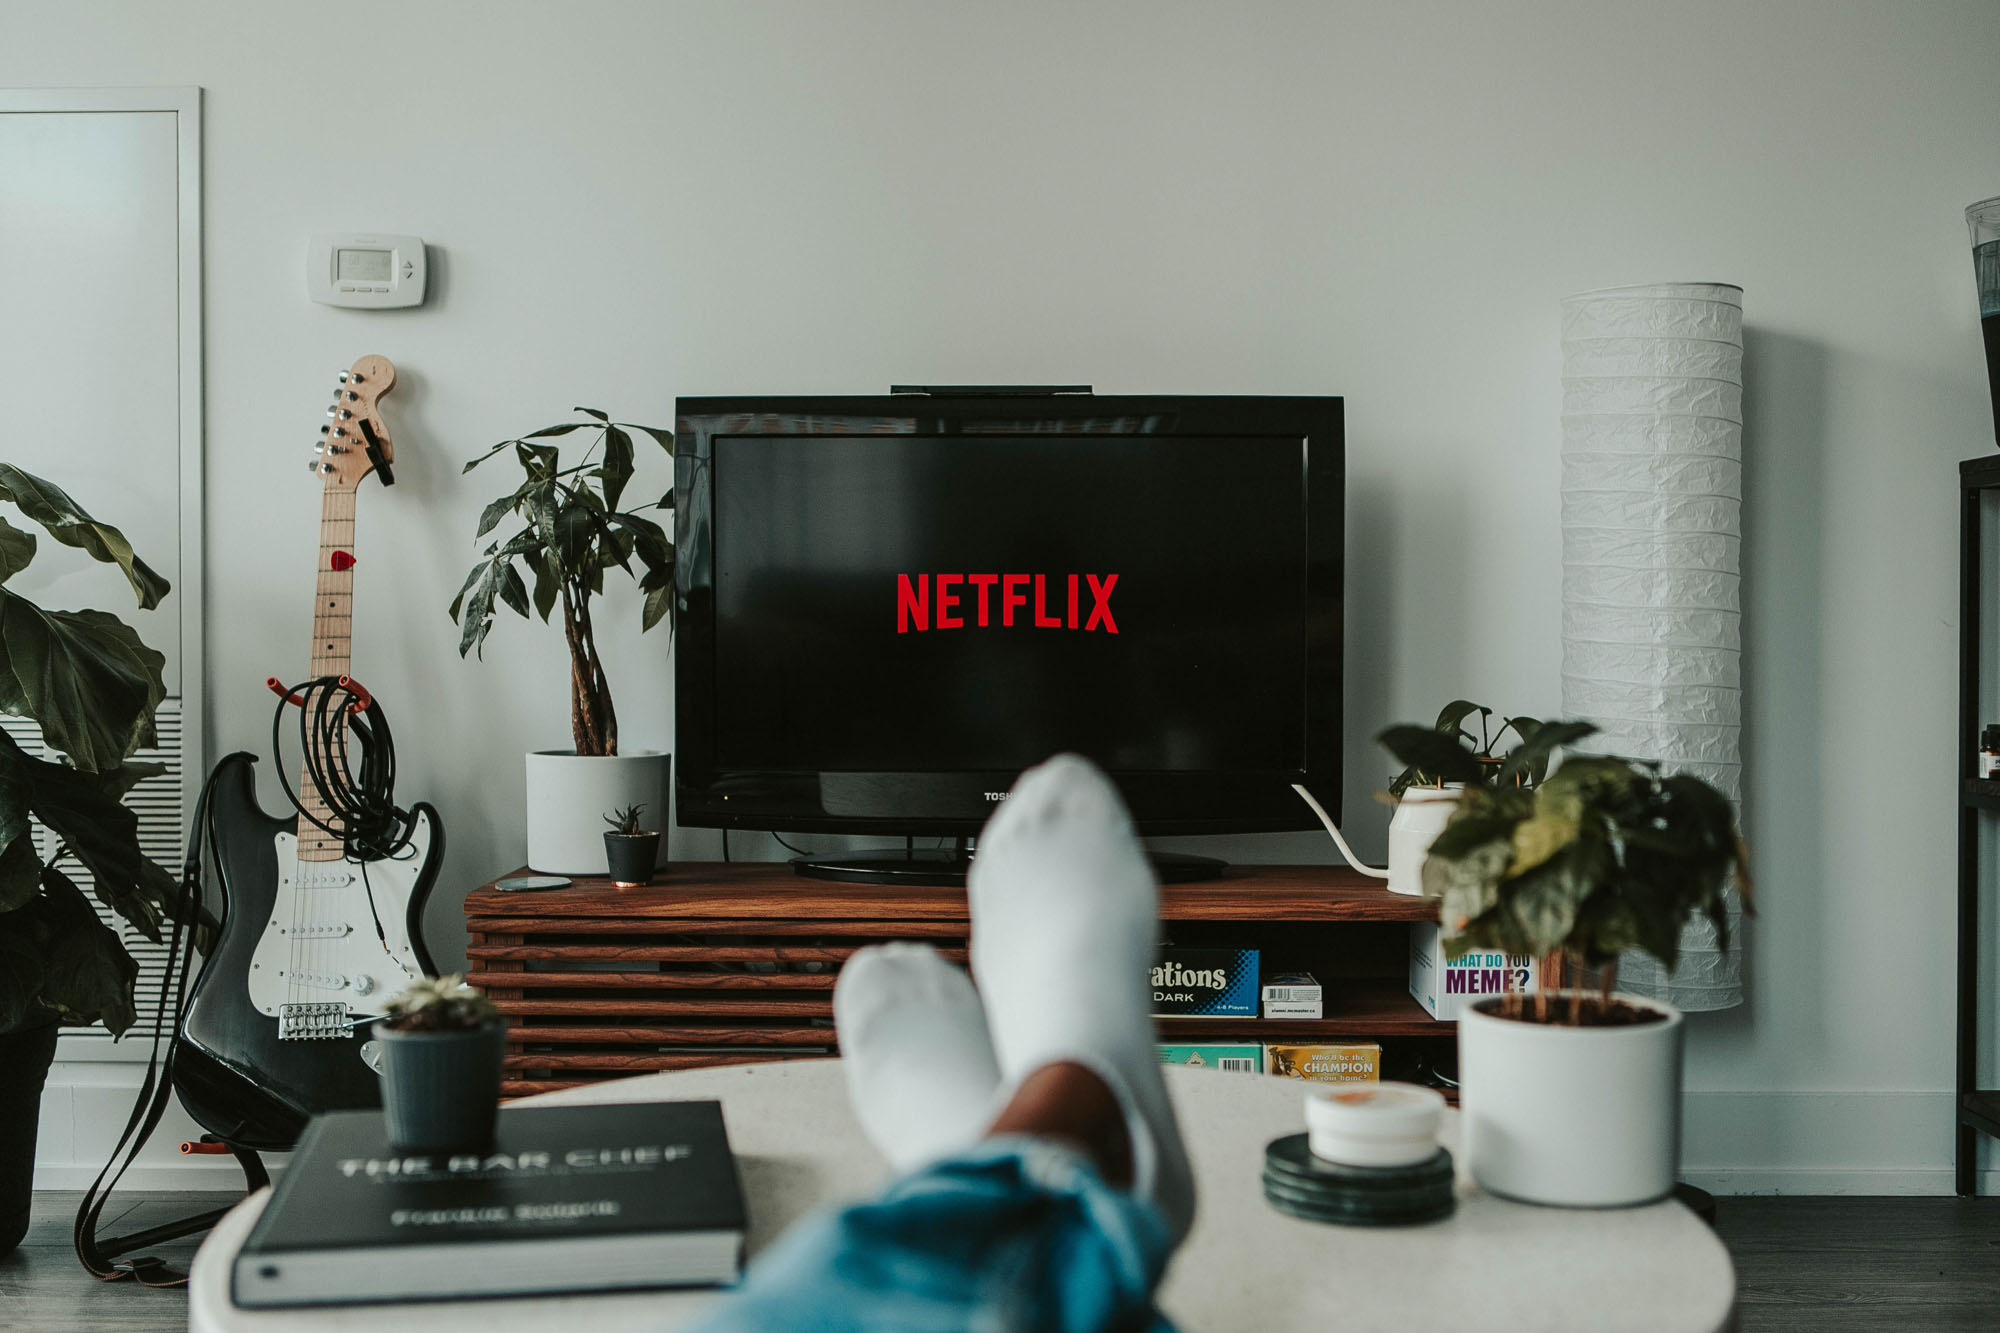 Person watching Netflix on couch as example of negative habit